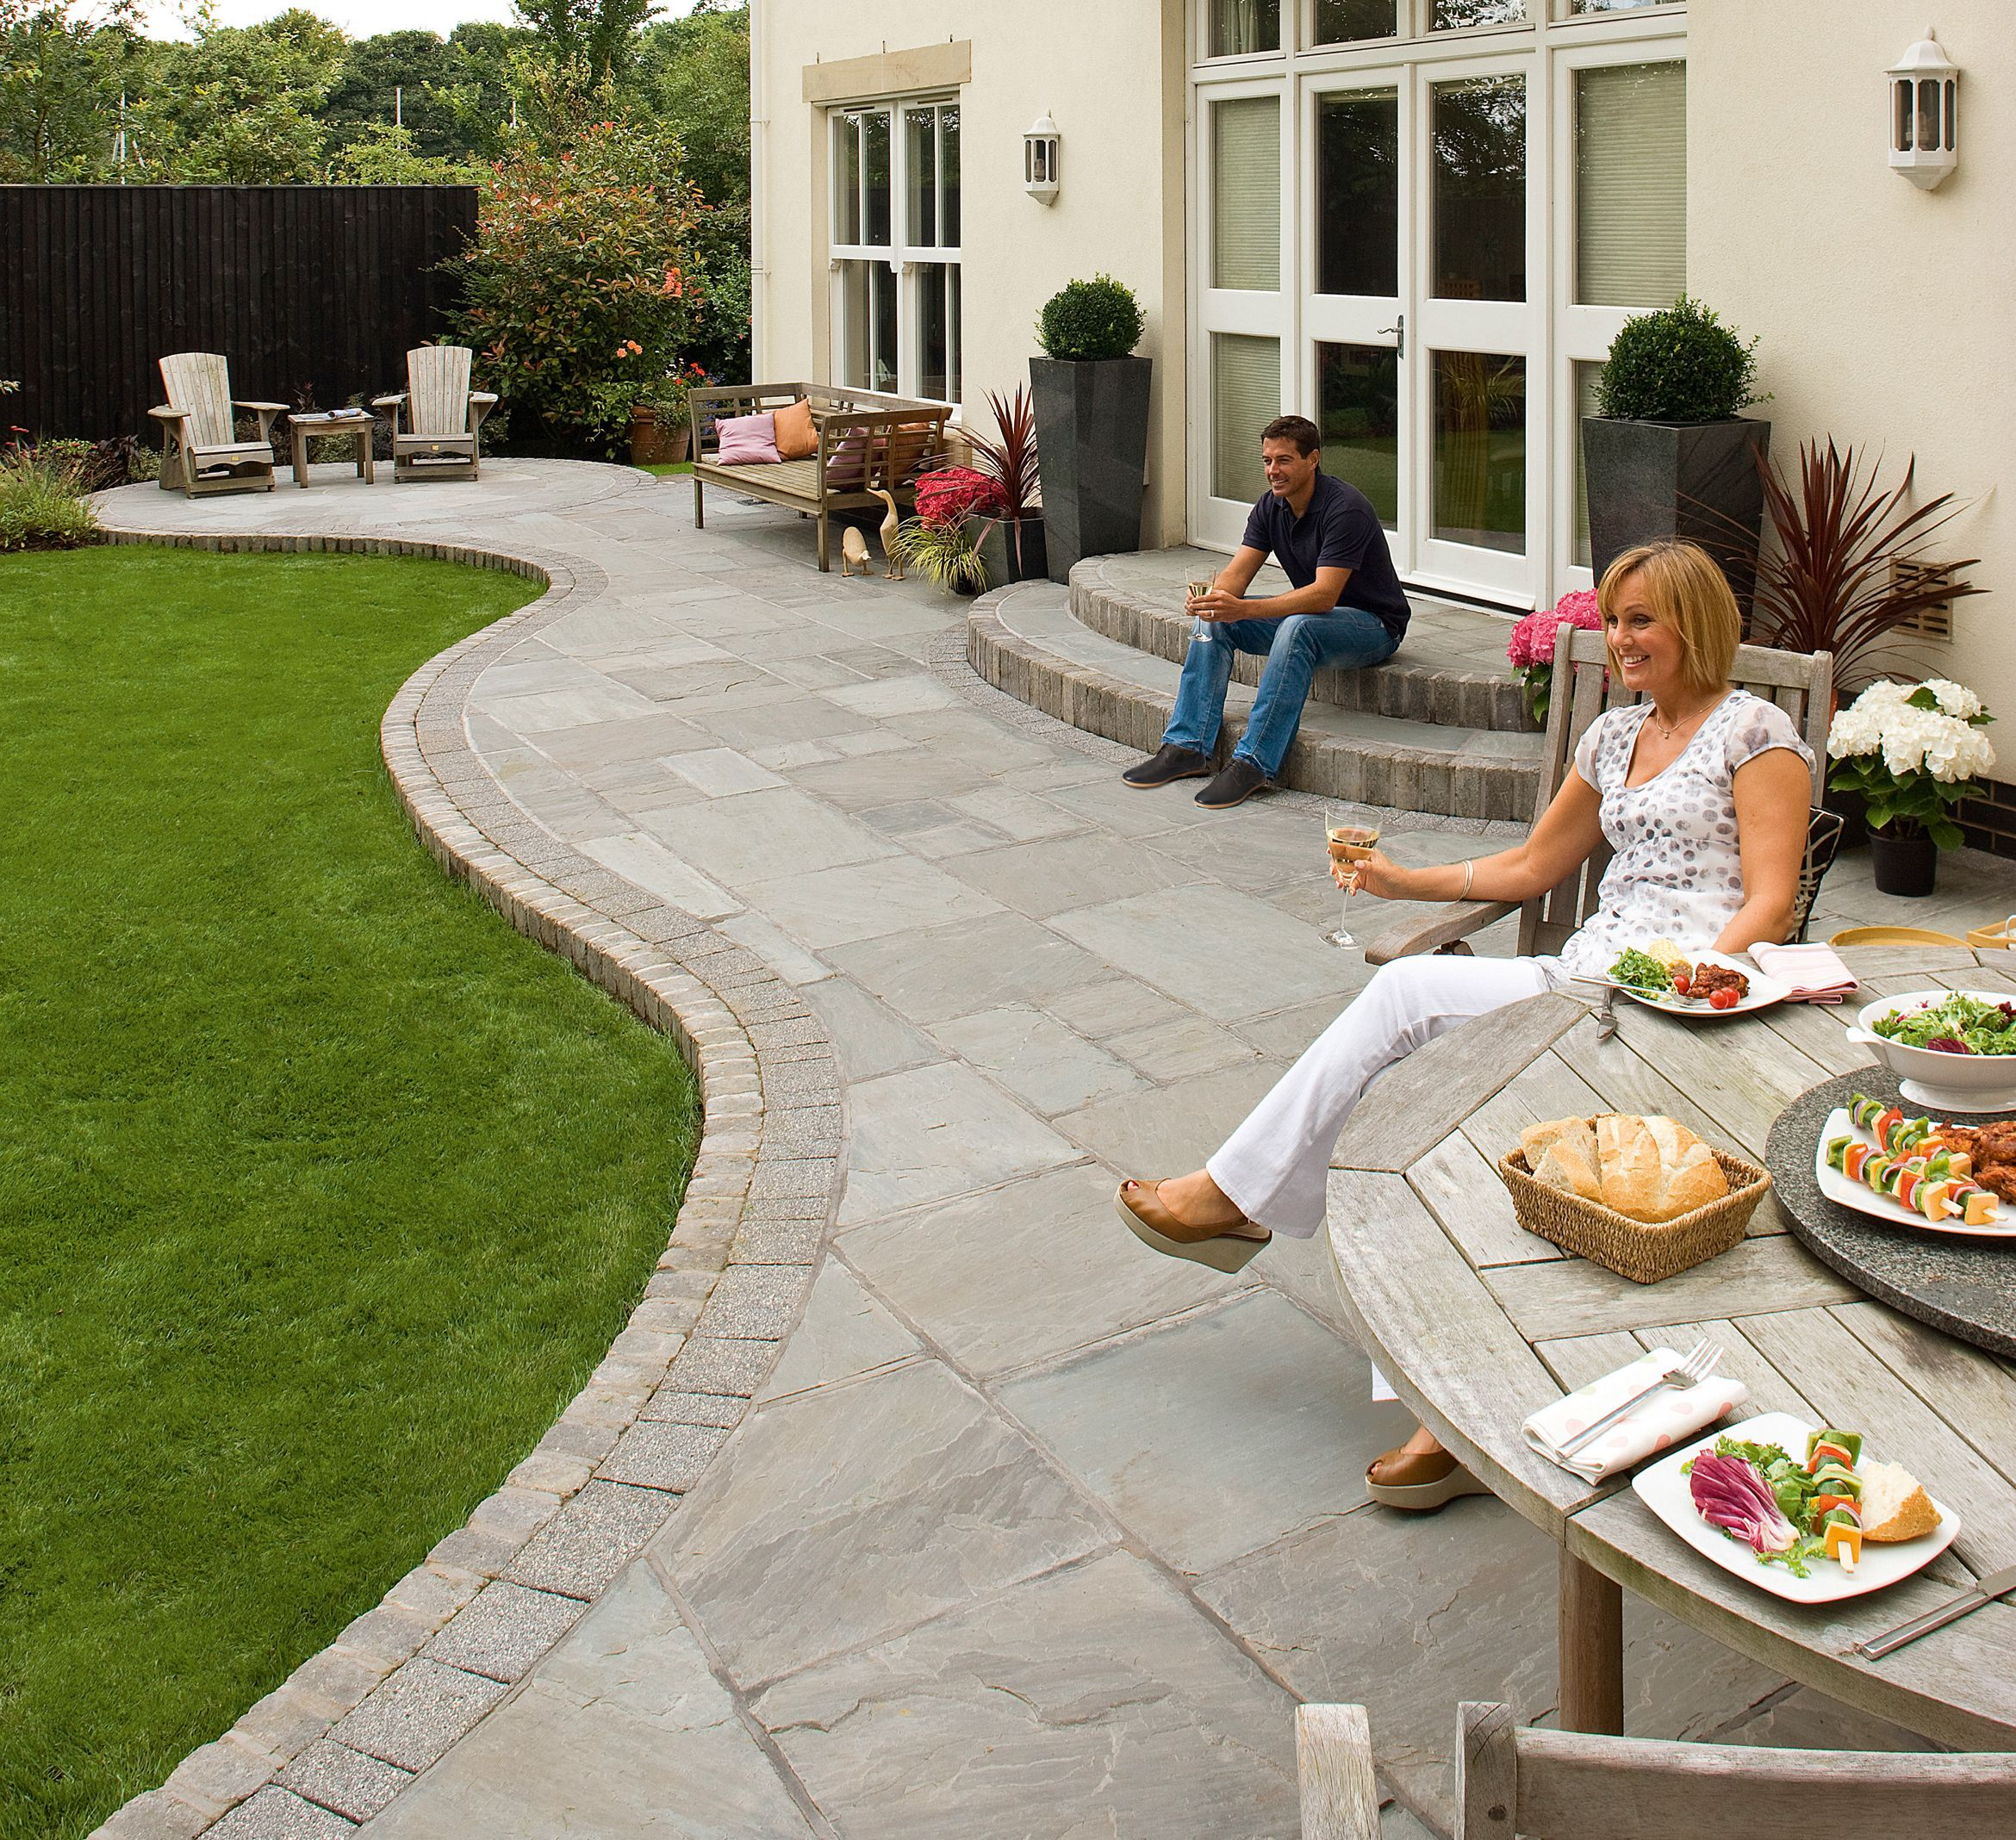 Attractive Endearing Unilock Pavers For Outdoor And Landscape Design: Tumbled Pavers | Paving  Stones | Unilock